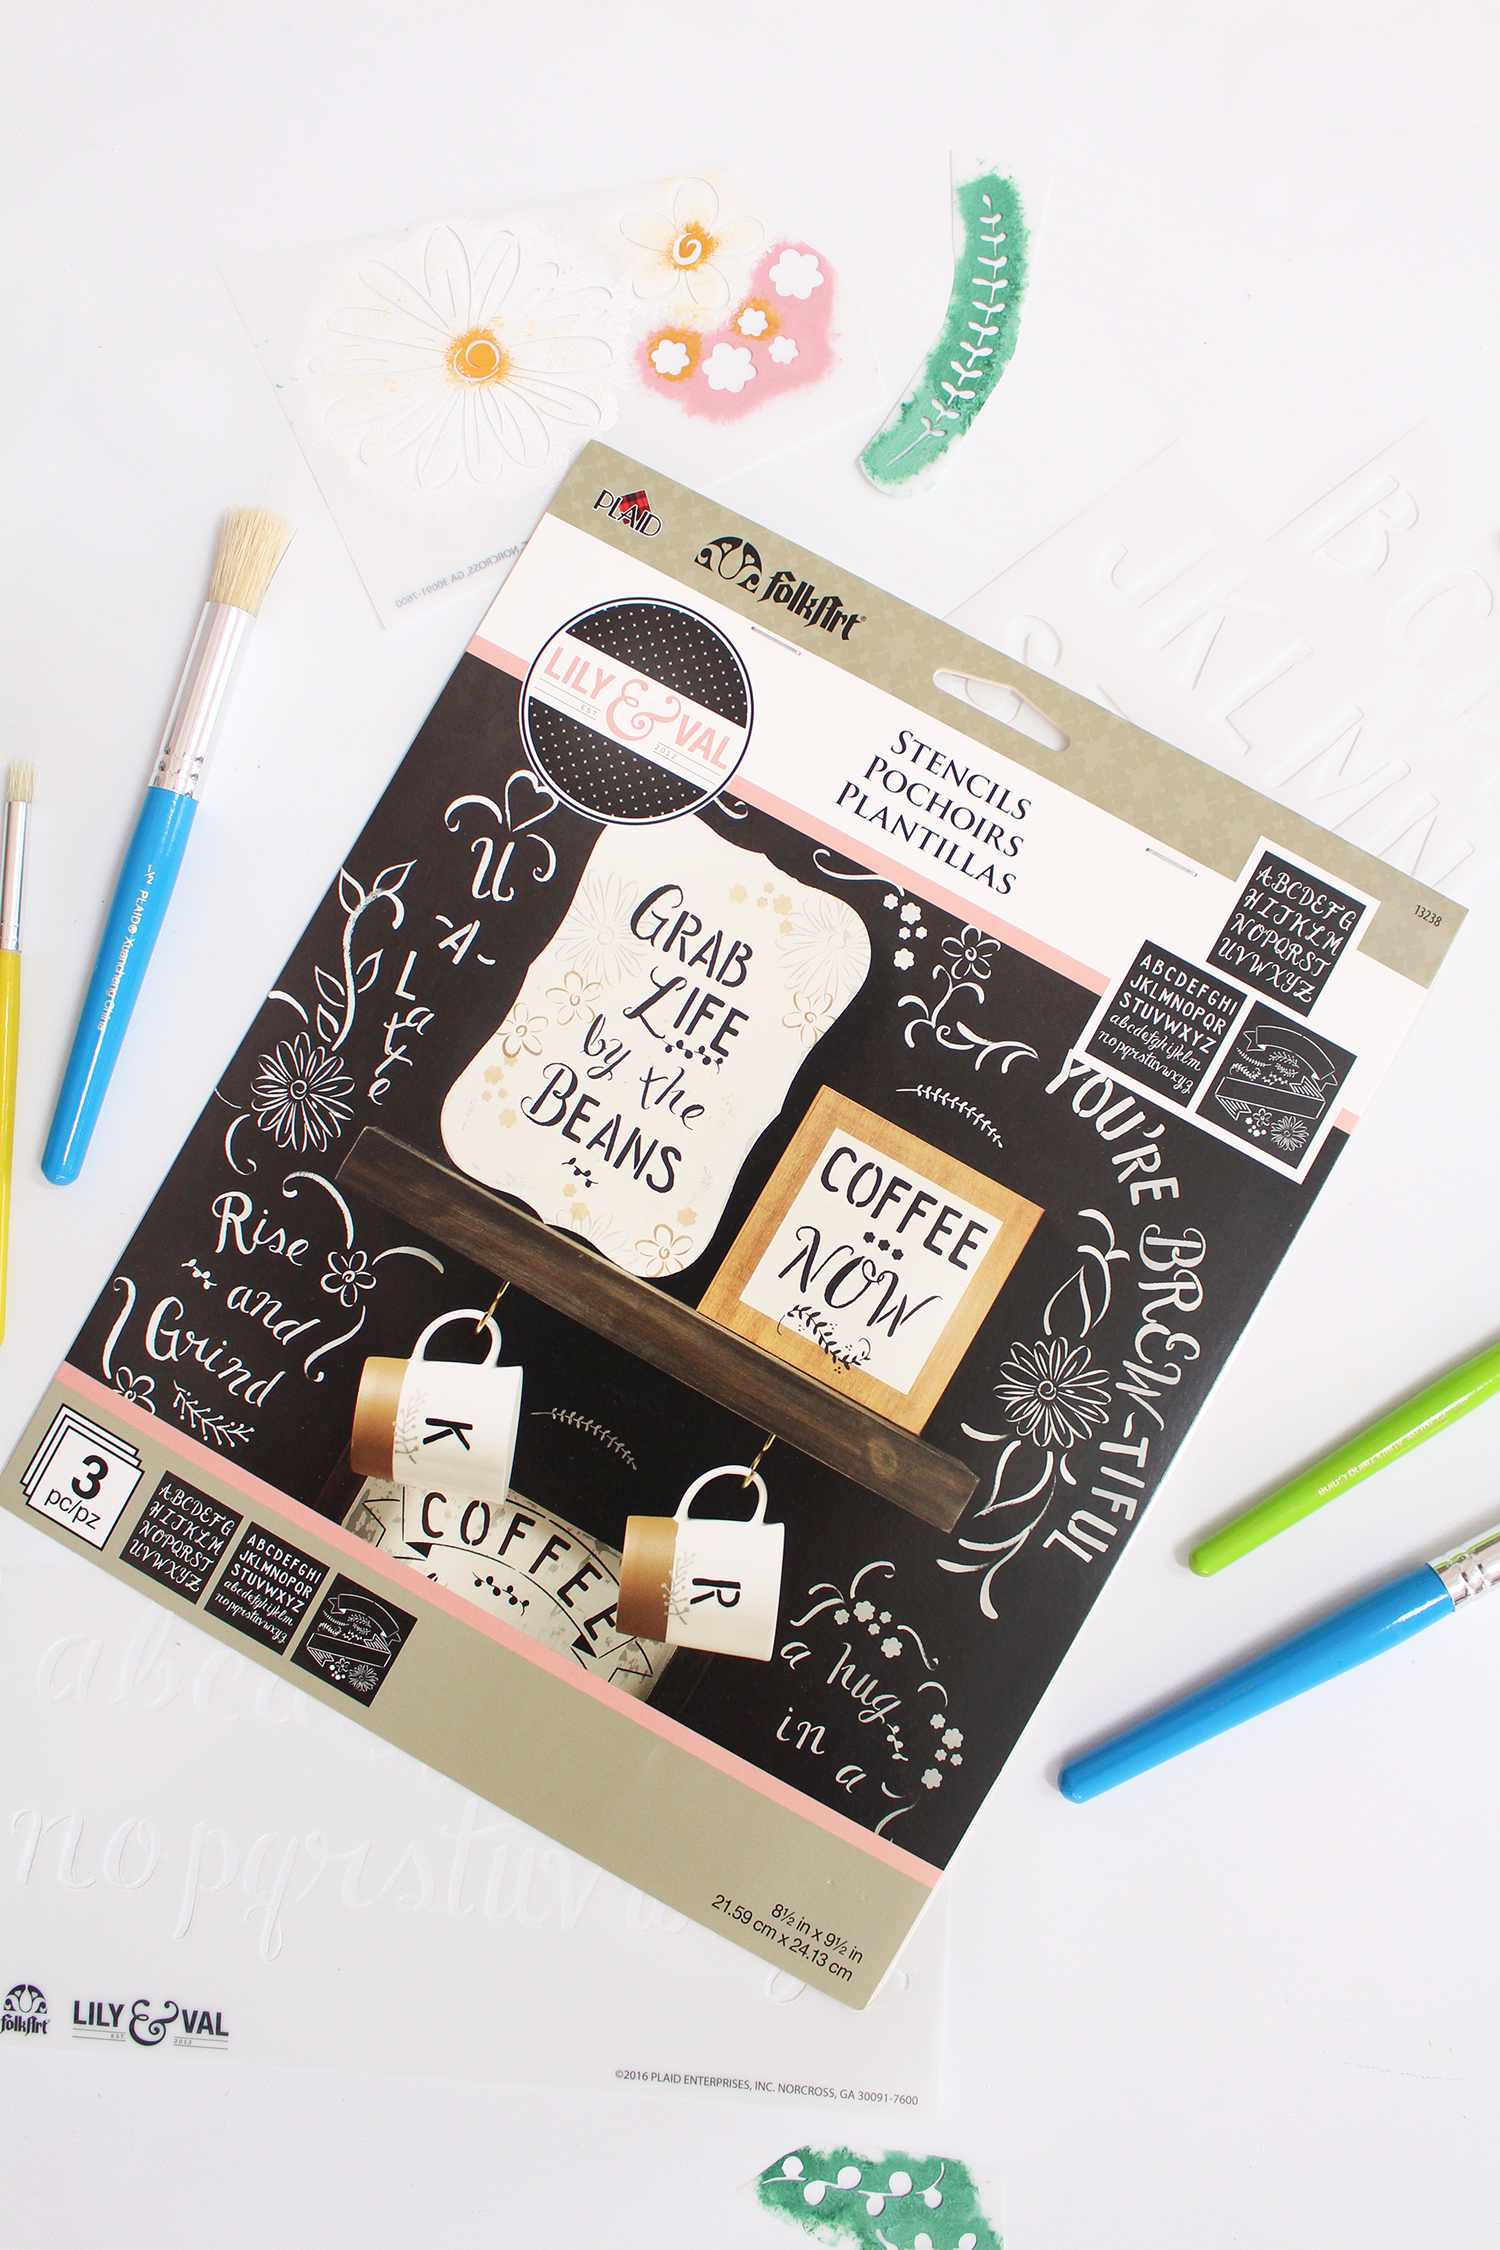 Introducing Lily & Val Chalkboard Lettering Stencils! Create gorgeous pieces of chalkboard art featuring Valerie McKeehan's signature hand lettering and embellishments. Available from Plaid Crafts at Michaels!